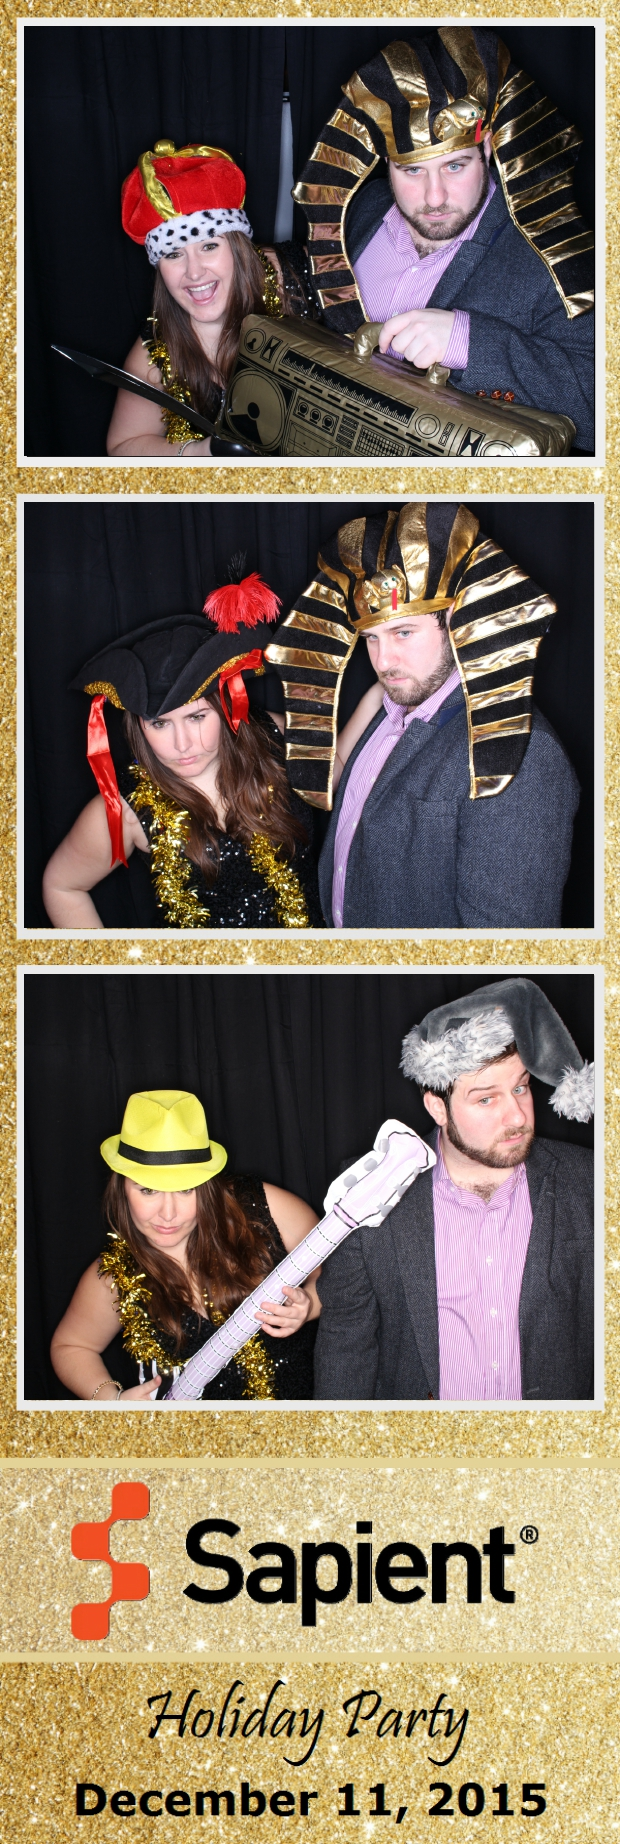 Guest House Events Photo Booth Sapient Holiday Party (68).jpg